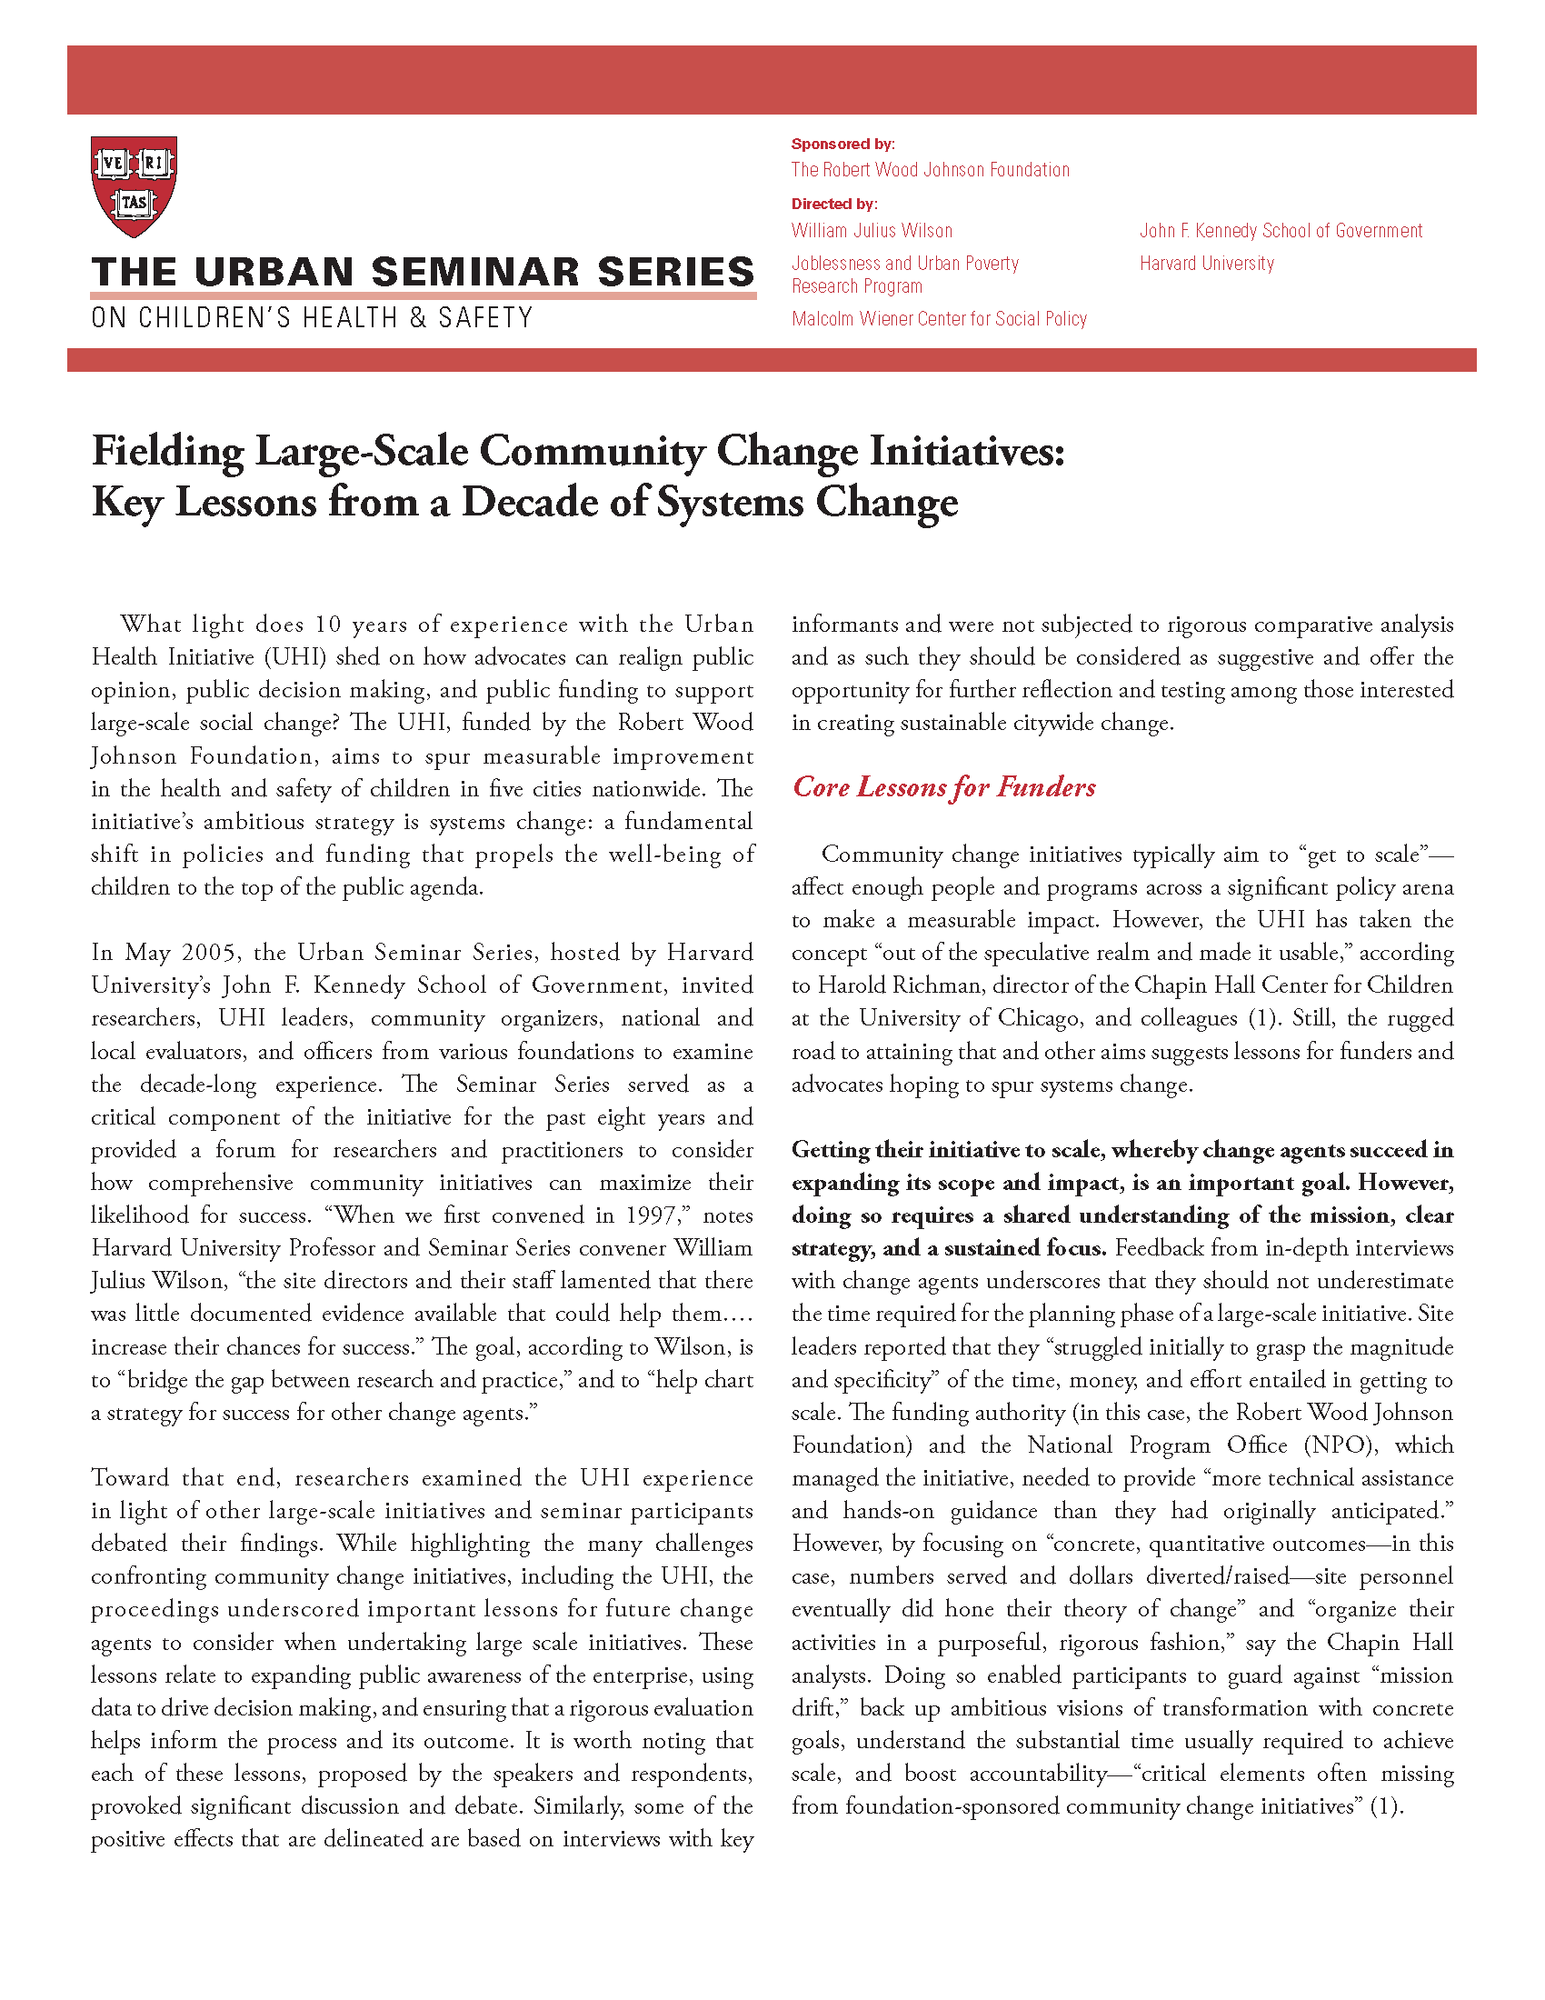 Fielding Large Scale Community Change Initiatives: Key Lessons From a Decade of Systems Change, May 2005